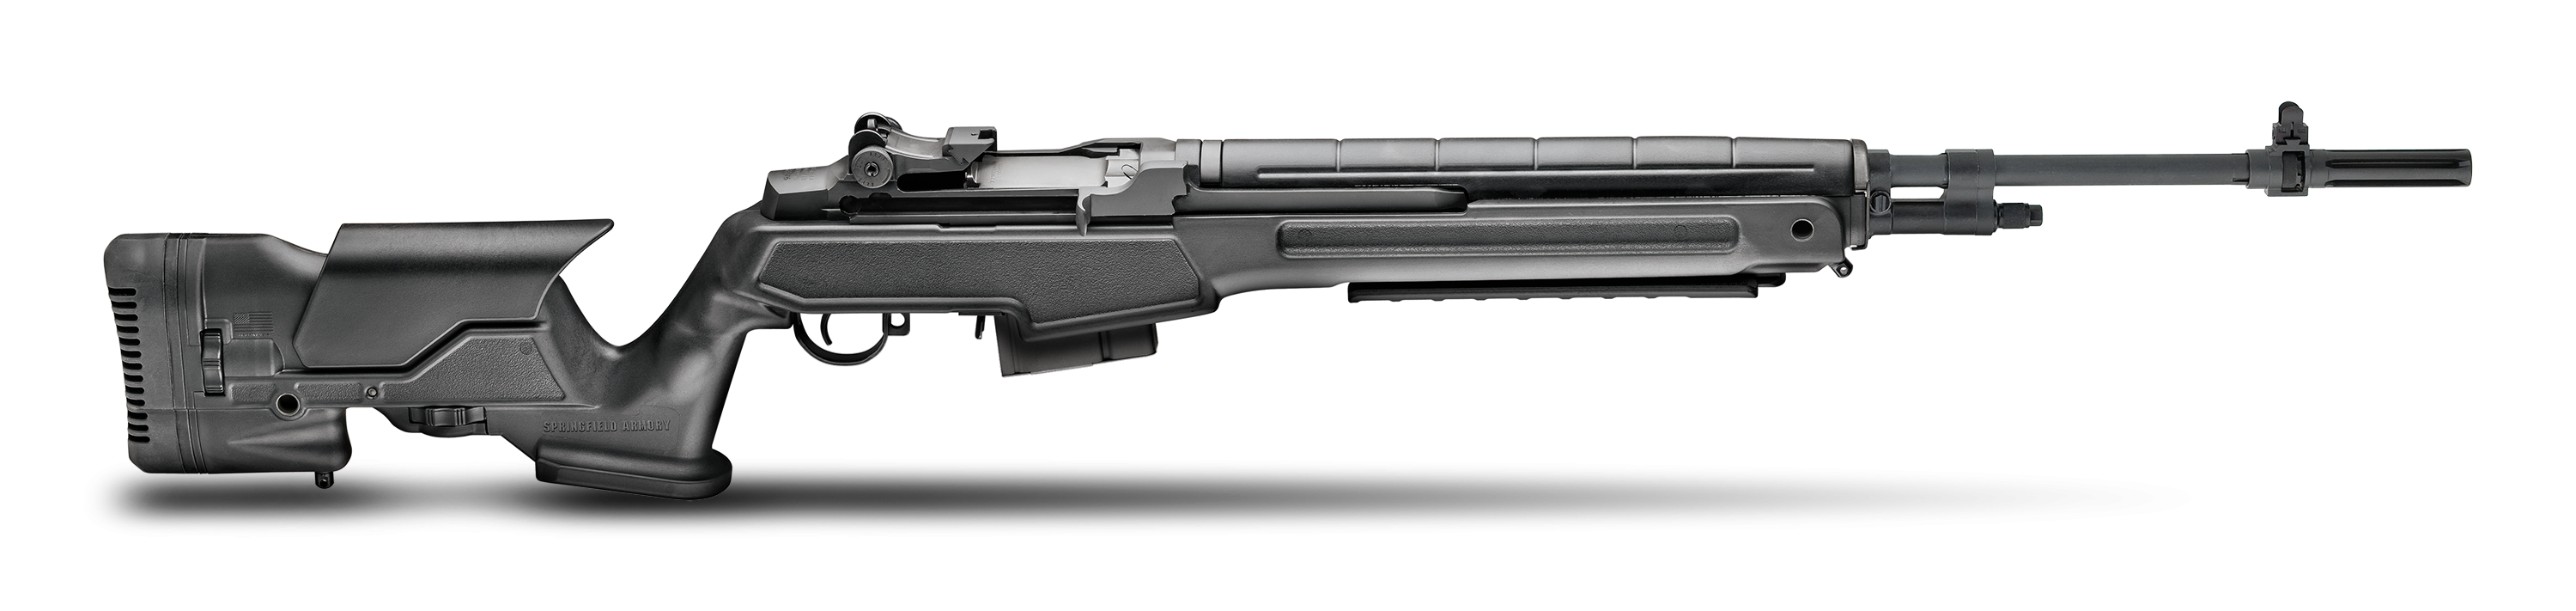 Springfield Armory M1A Precision Loaded NM BBL